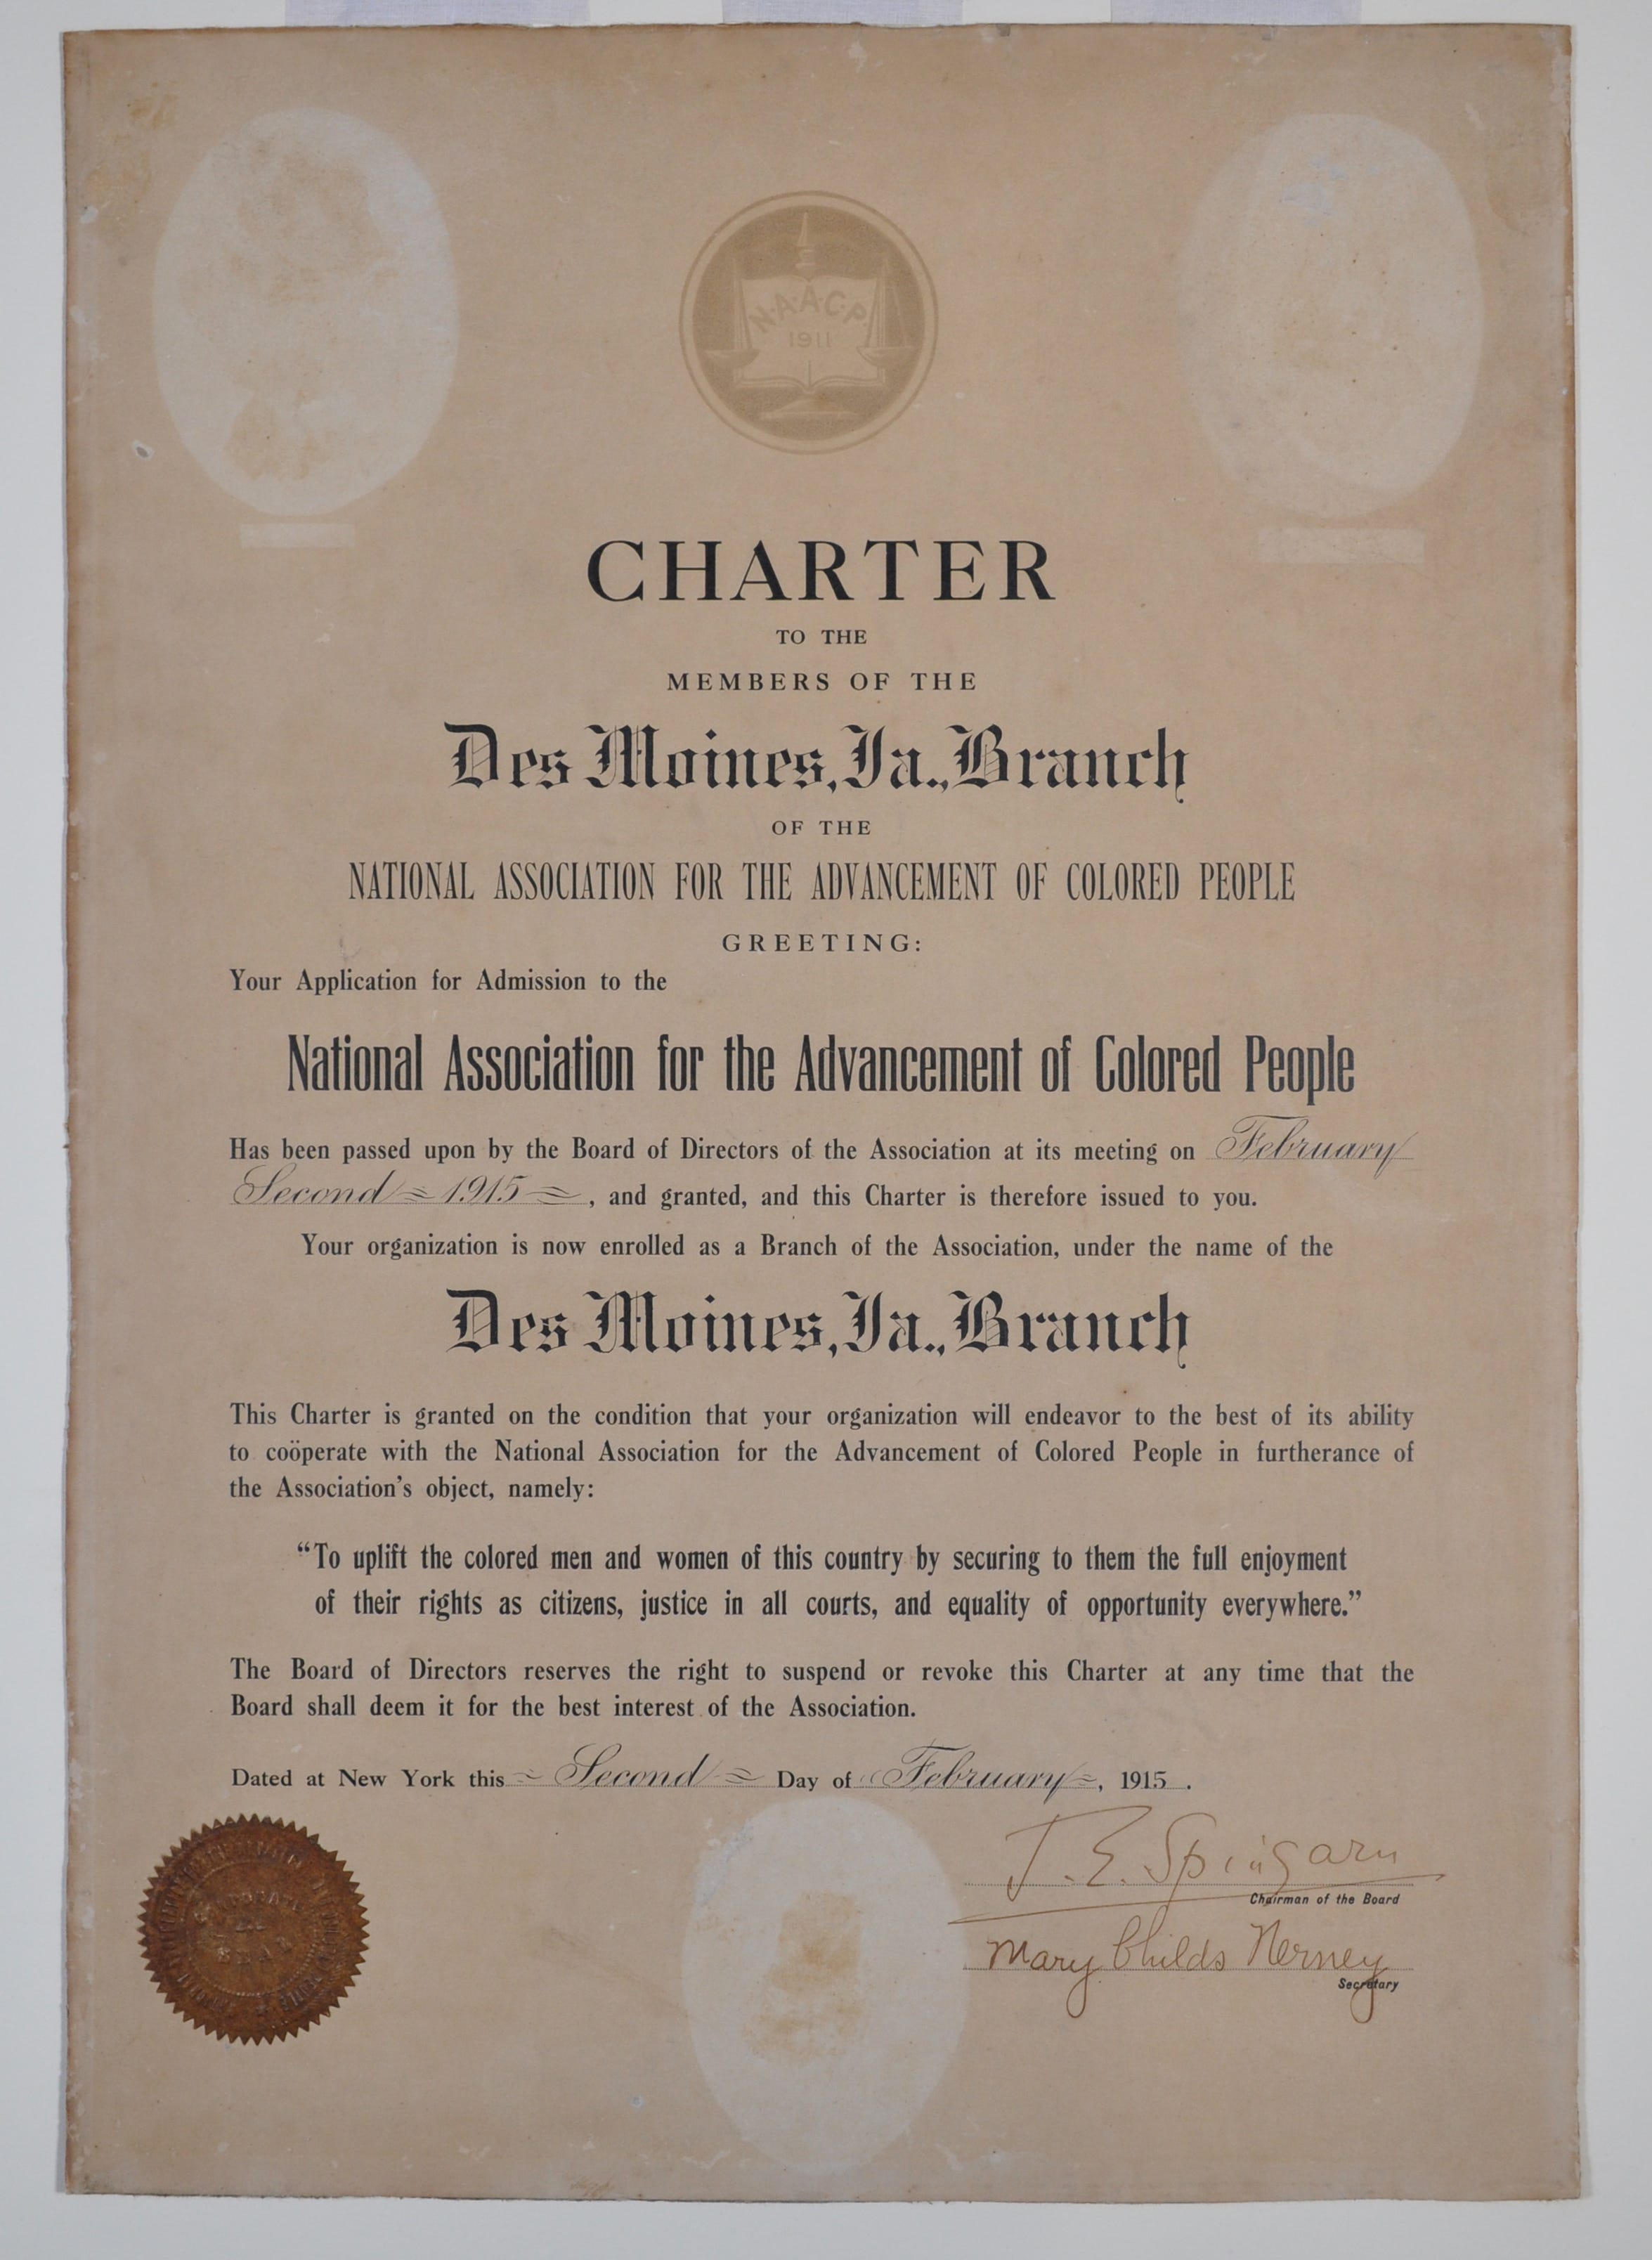 Charter for the Des Moines Chapter of the NAACP.